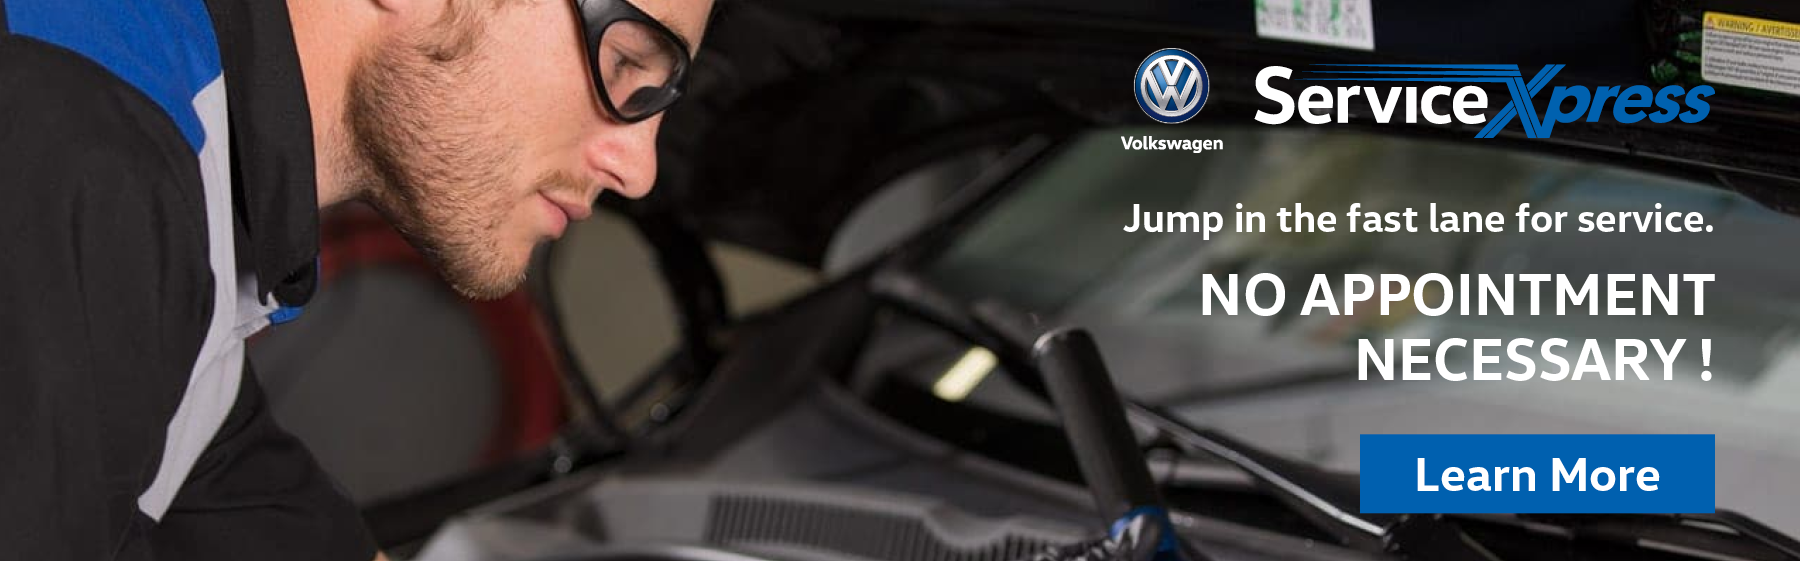 Volkswagen service xpress. Jump in the fast lane for service. No appointment necessary! Learn more.